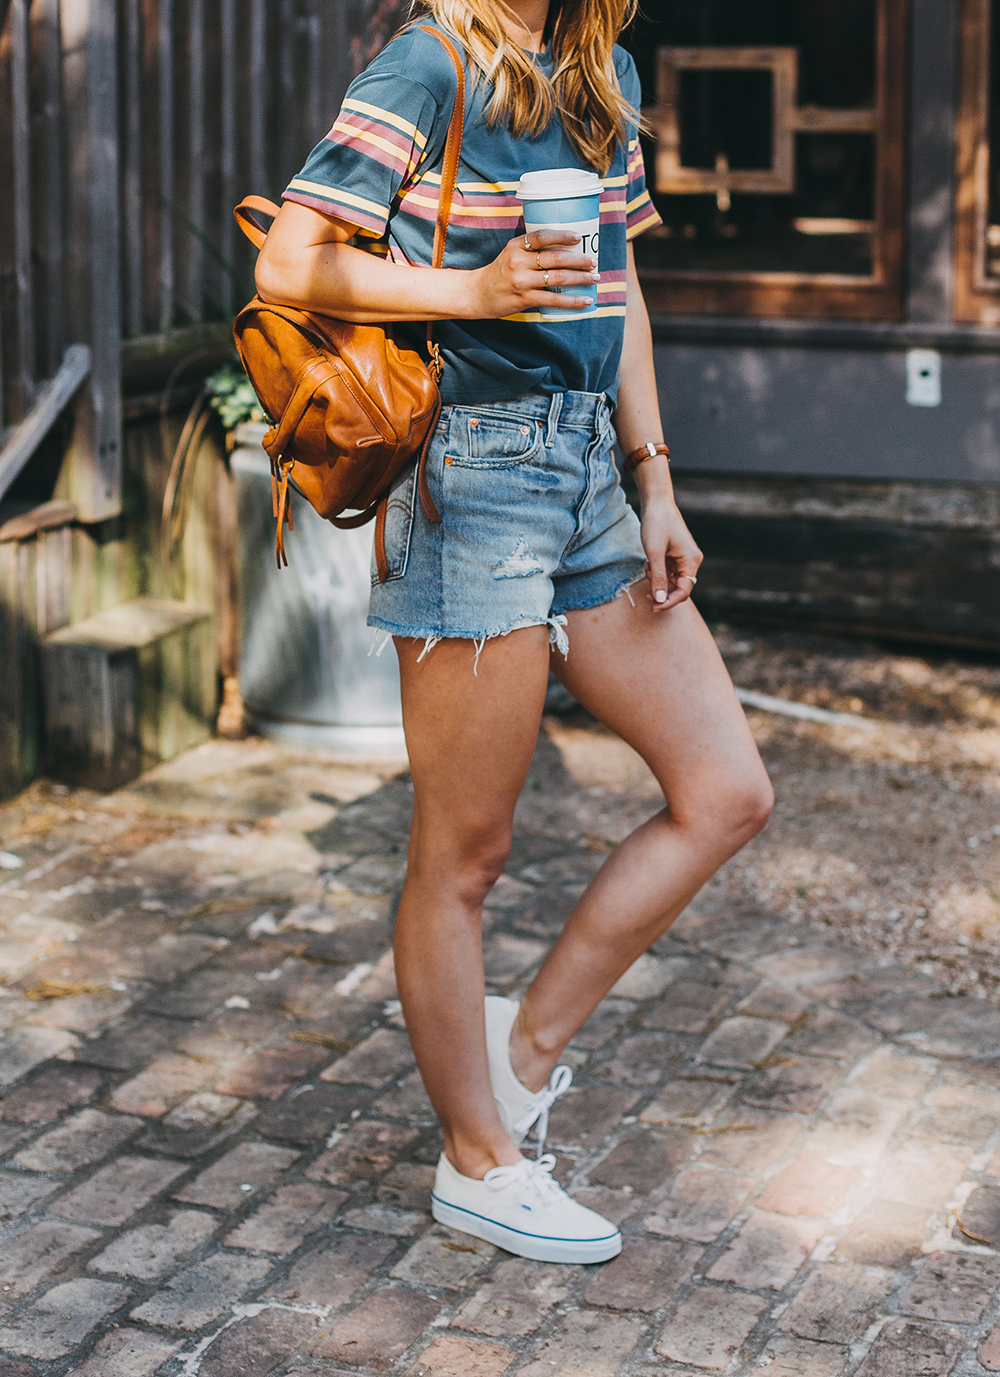 livvyland-blog-olivia-watson-austin-texas-fashion-style-urban-outfitters-striped-vintage-tee-levis-denim-wedgie-shorts-madewell-mini-leather-backpack-7